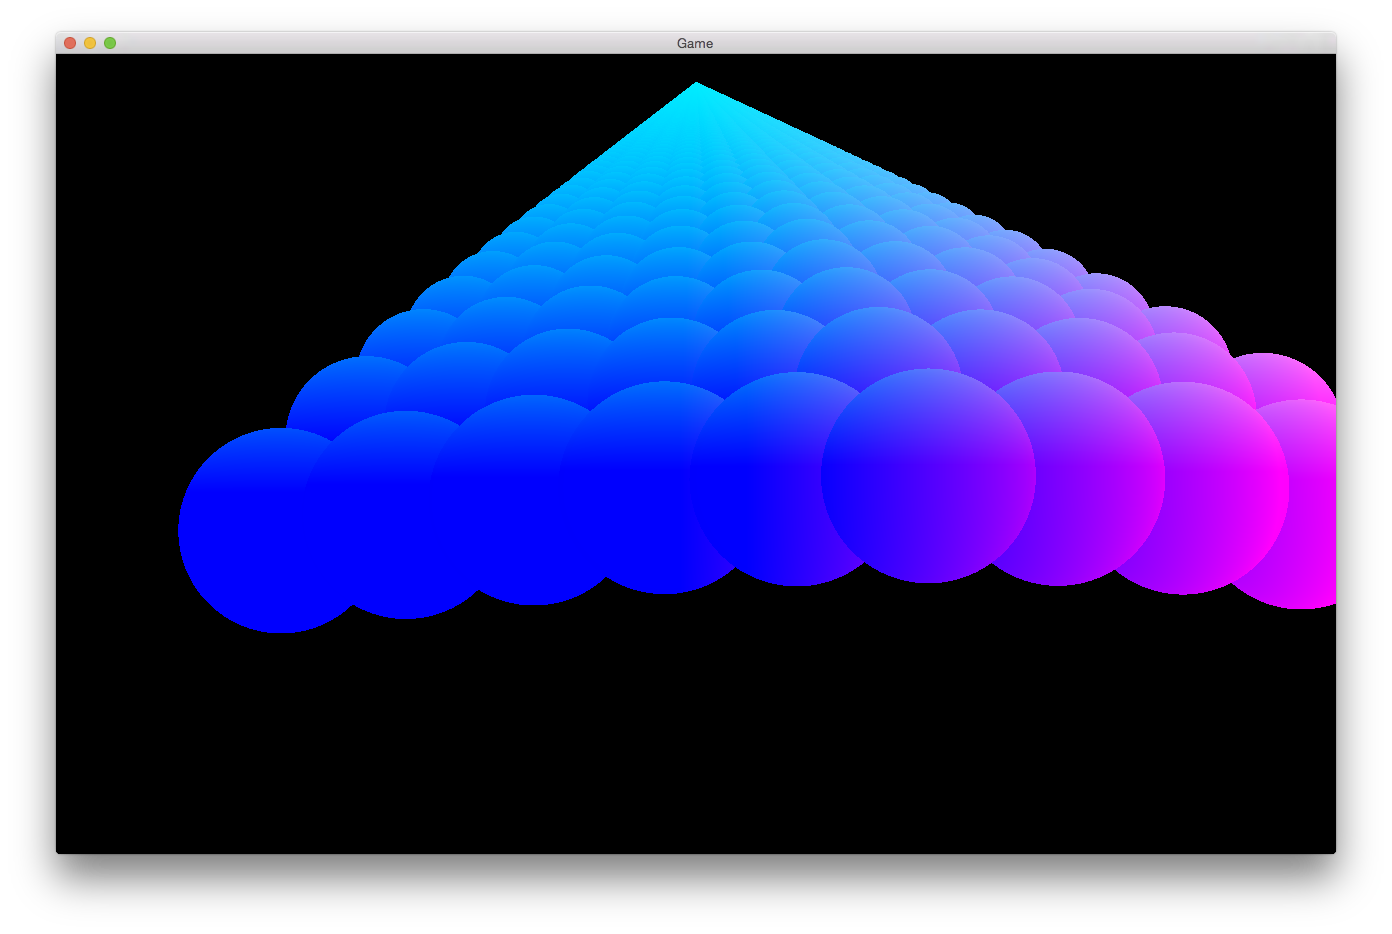 Clip space. Opengl z value of